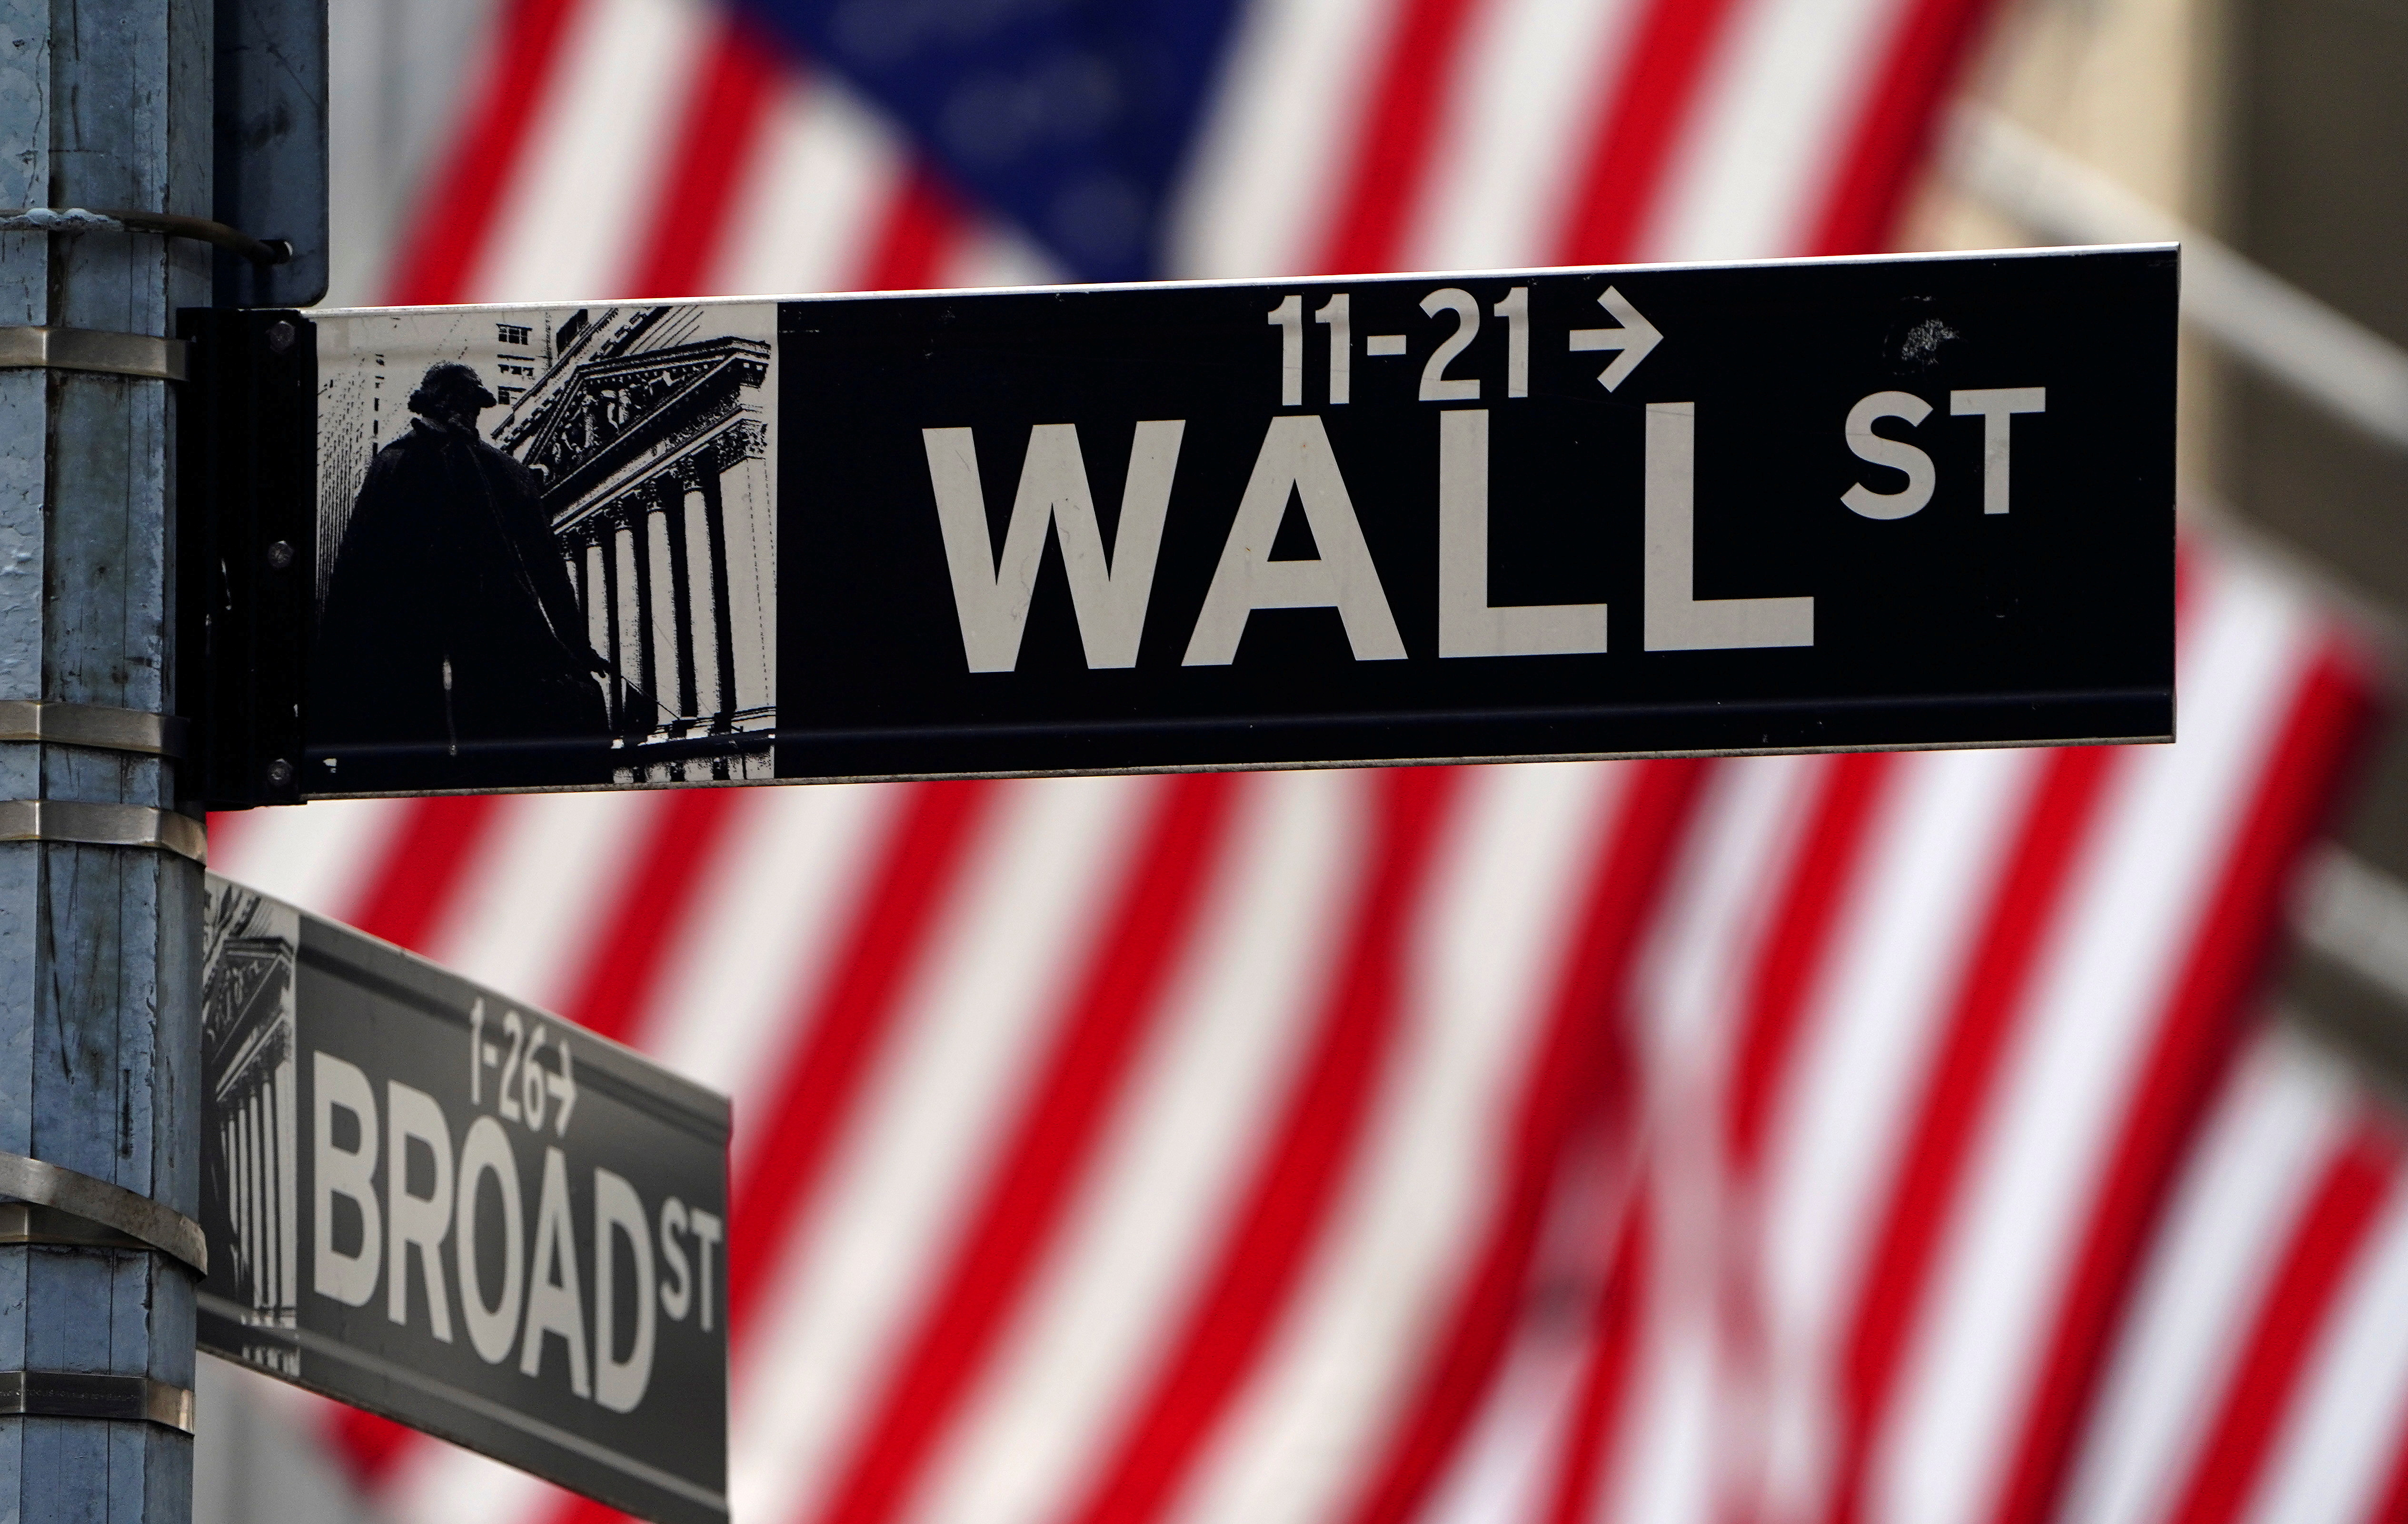 A Wall Street sign is pictured outside the New York Stock Exchange in the Manhattan borough of New York City, New York, U.S., April 16, 2021. REUTERS/Carlo Allegri/File Photo